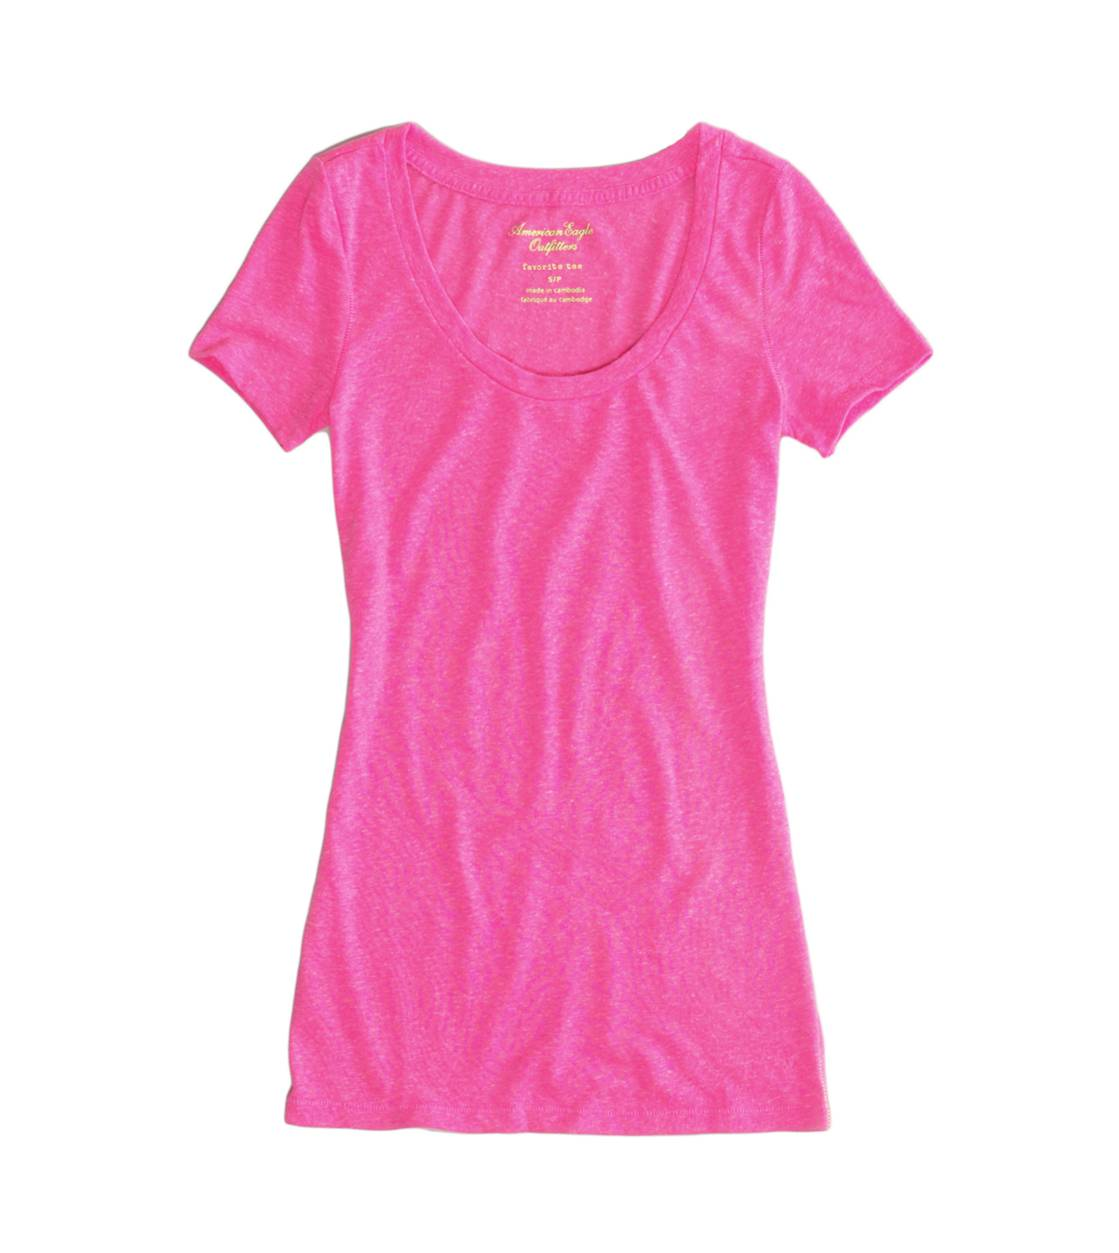 Neon Pink AEO Factory Scoop Favorite T-Shirt